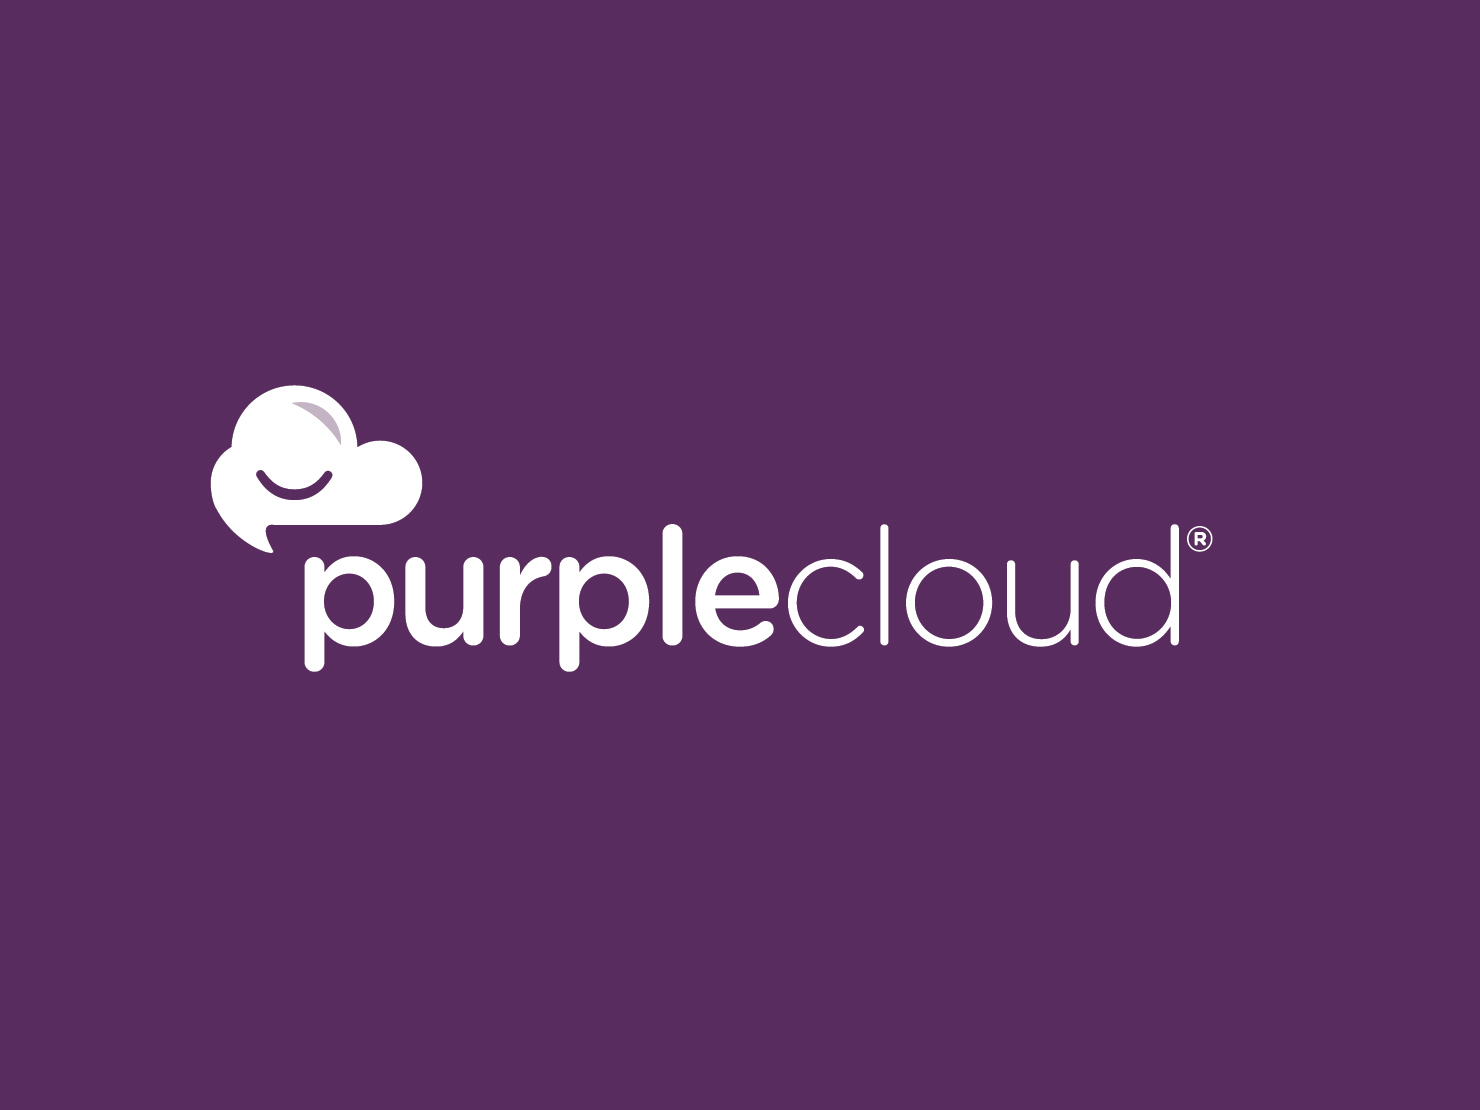 purplecloud_1c_white